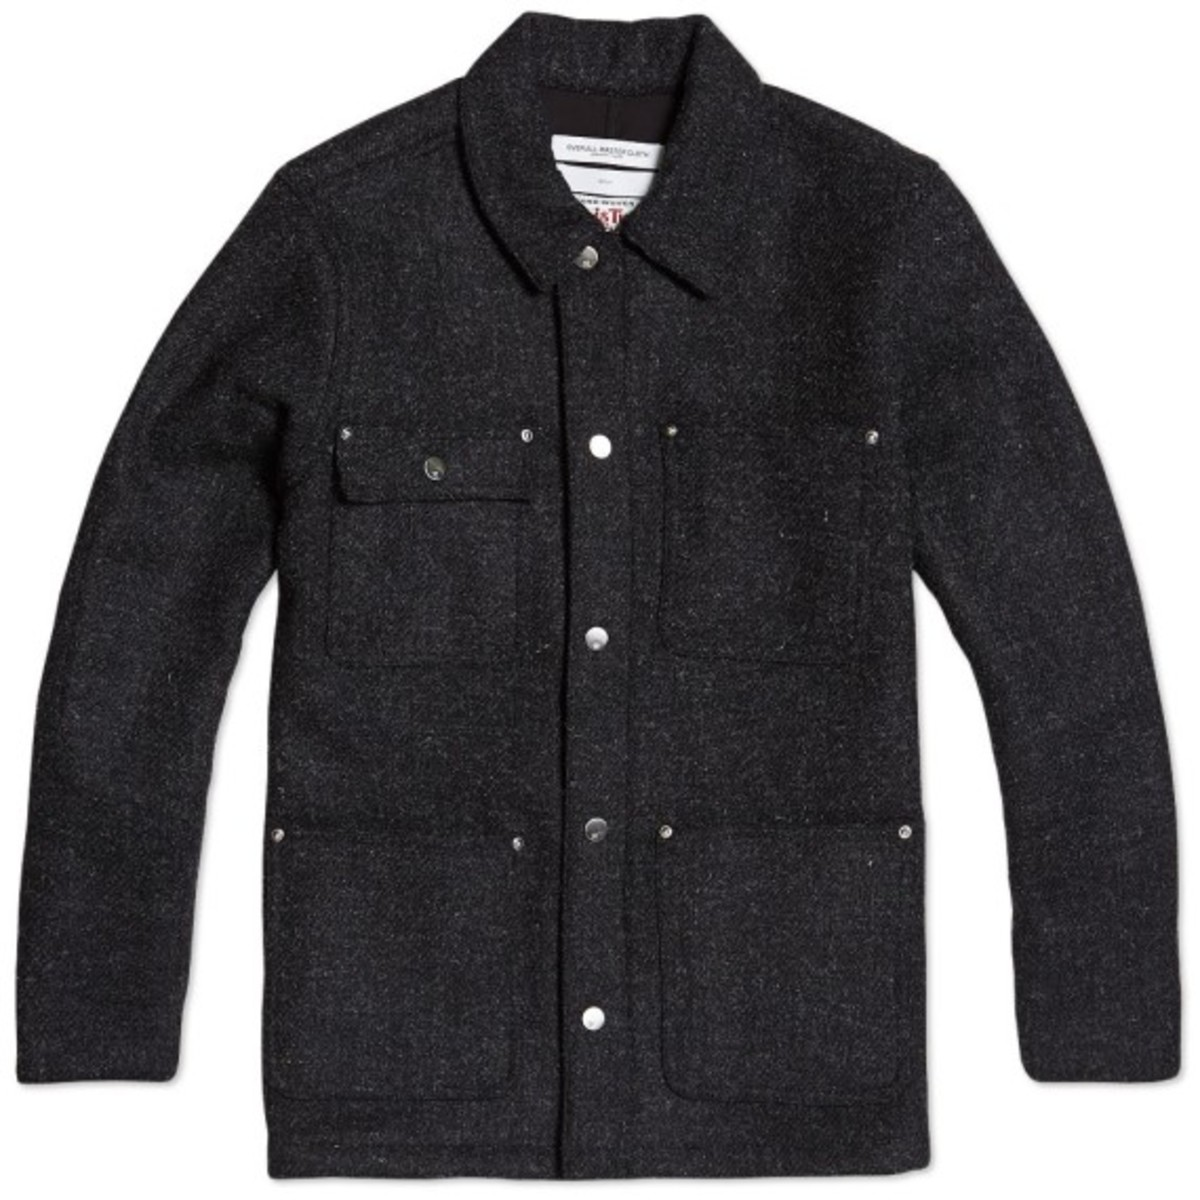 over-all-master-cloth-oamc-fall-winter-2013-collection-available-now-01